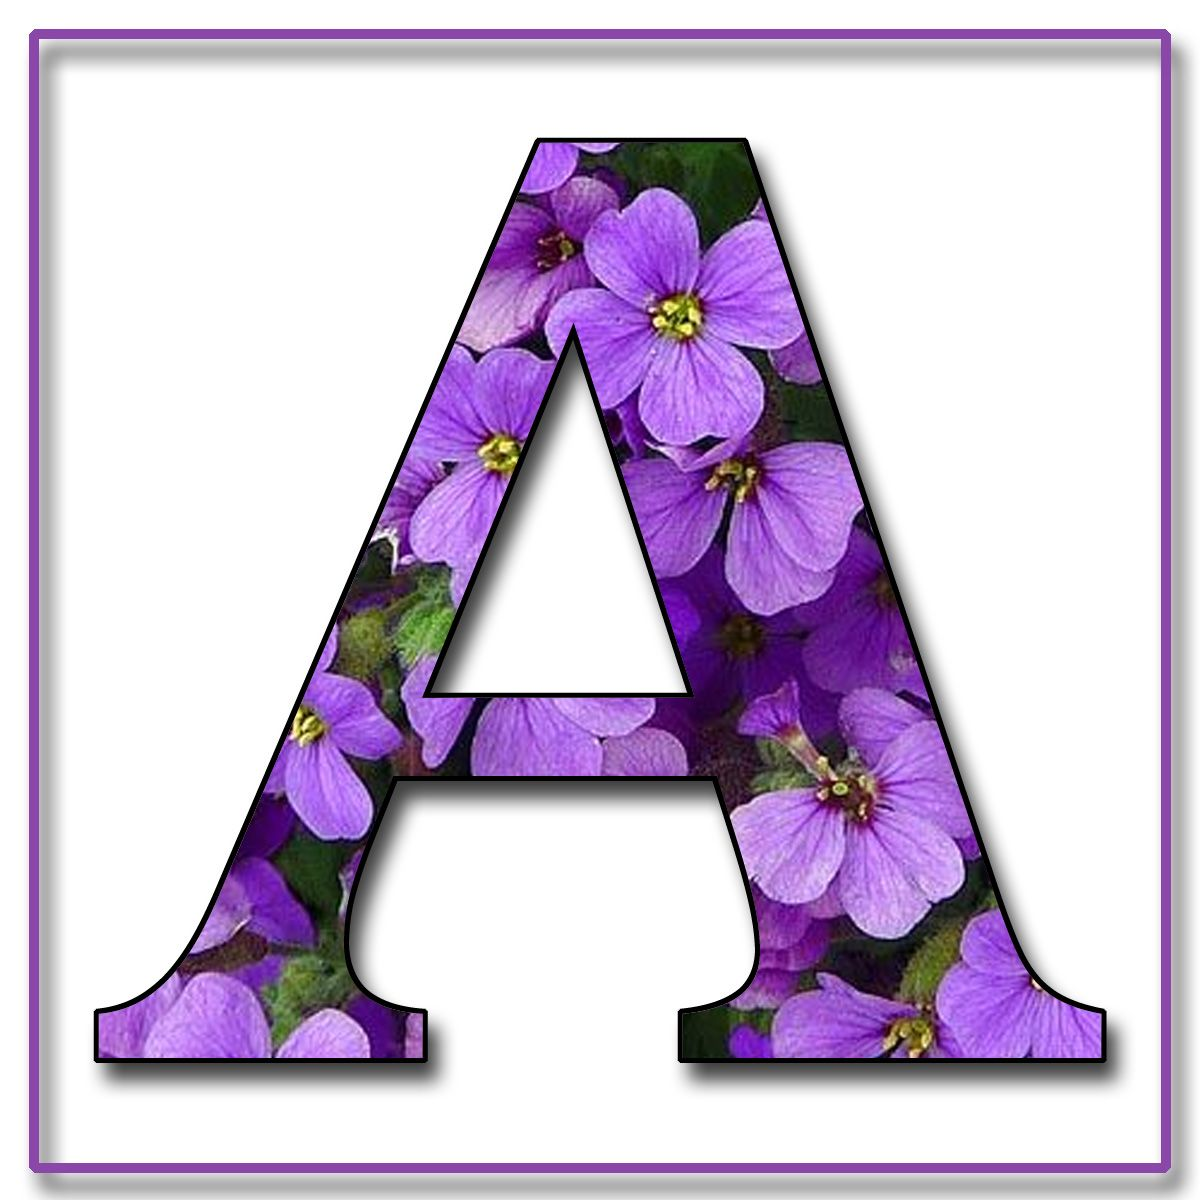 granny enchanted 39 s blog purple flowers free scrapbook alphabet letters in jpg png abanded. Black Bedroom Furniture Sets. Home Design Ideas